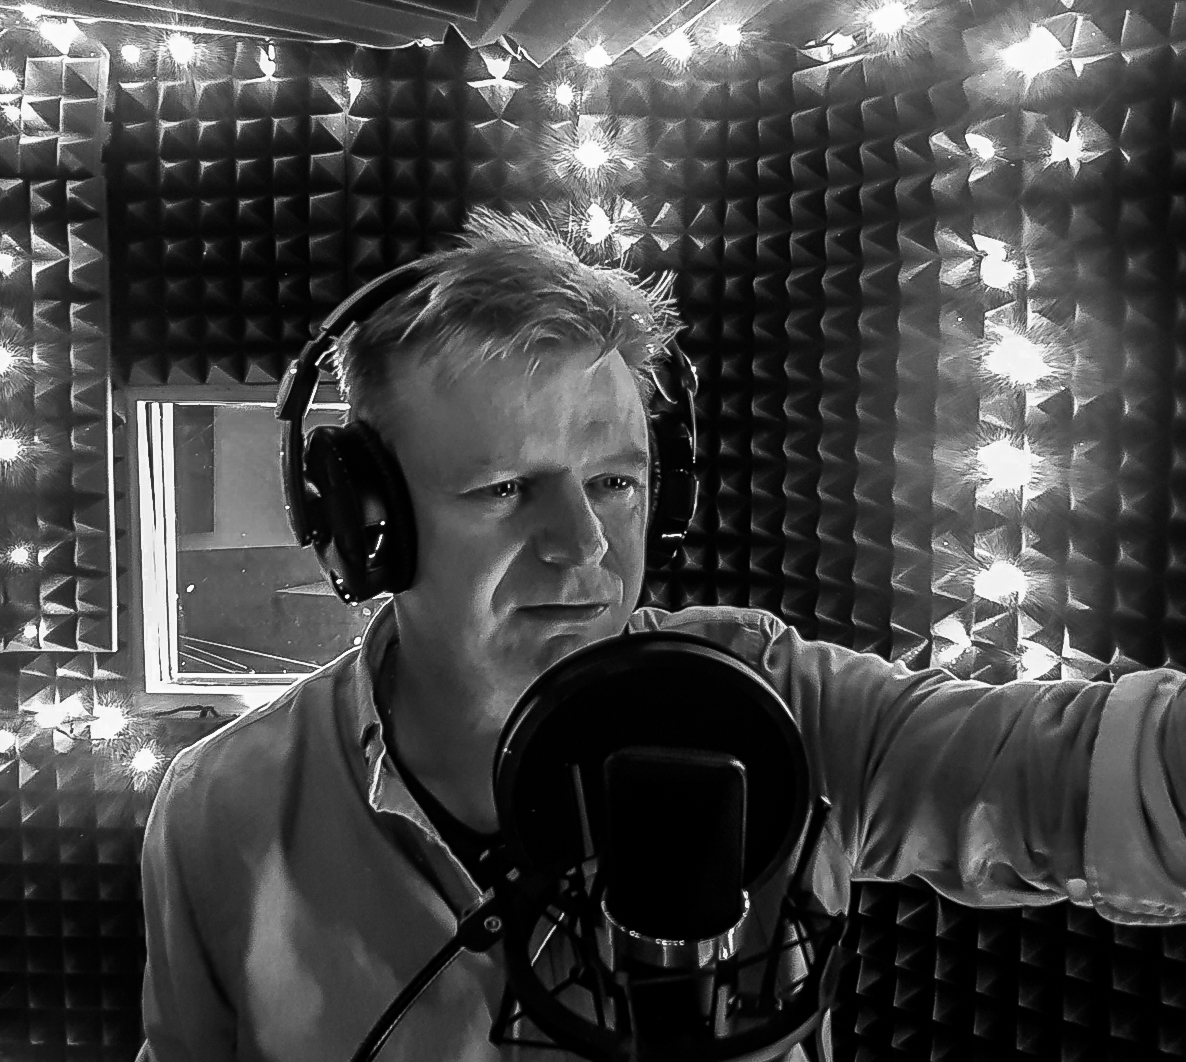 VoiceoverPaul - Voiceover Studio Finder